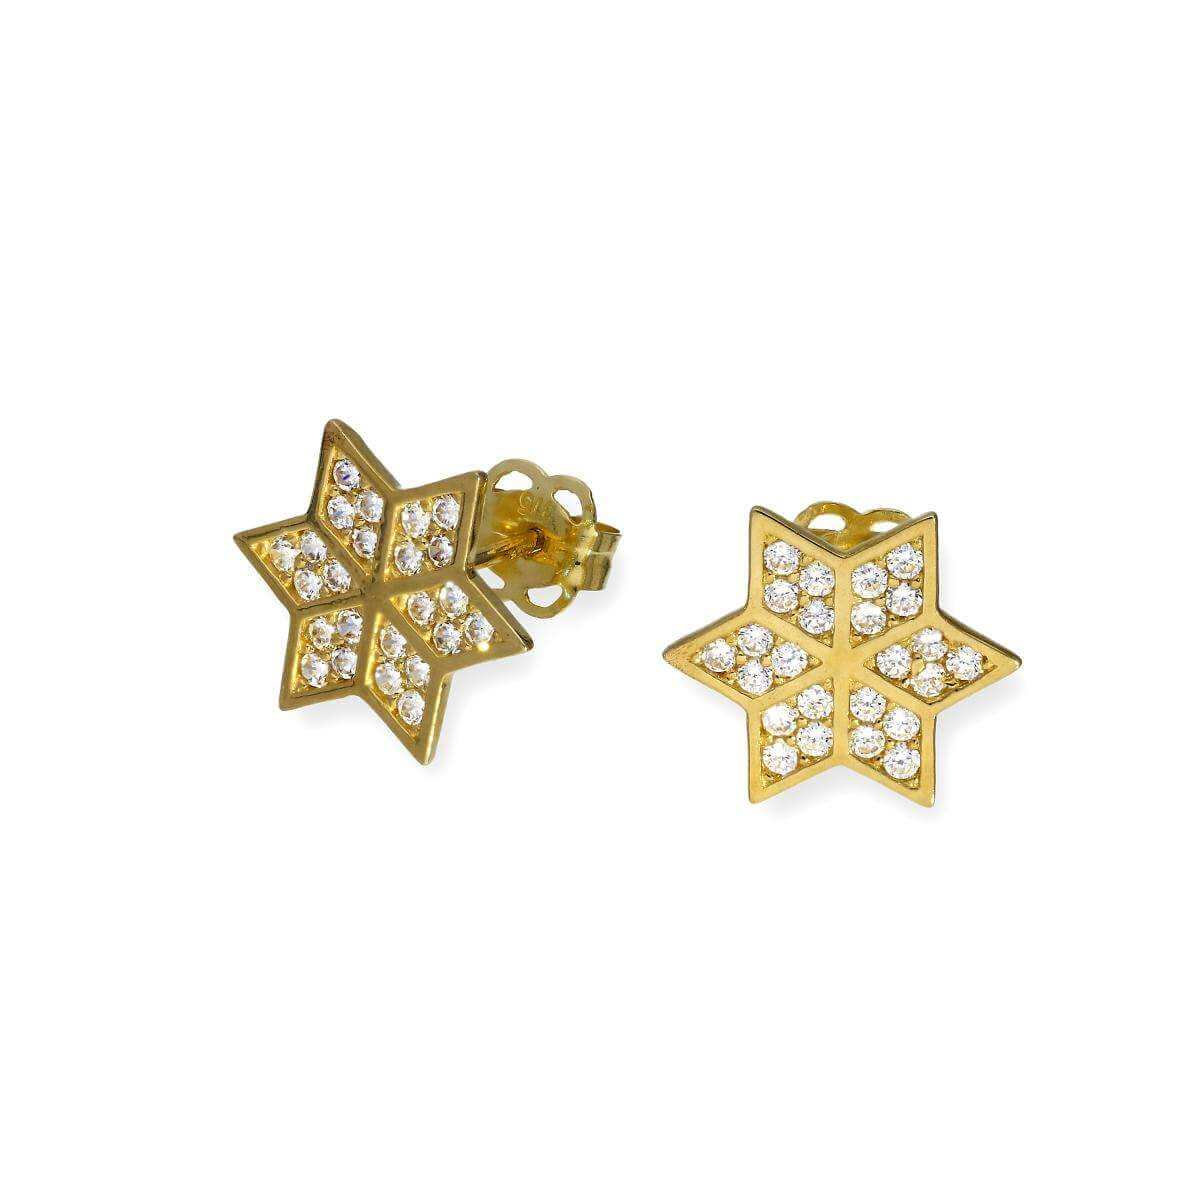 9ct Gold & Clear CZ Crystal Six-Pointed Star Stud Earrings